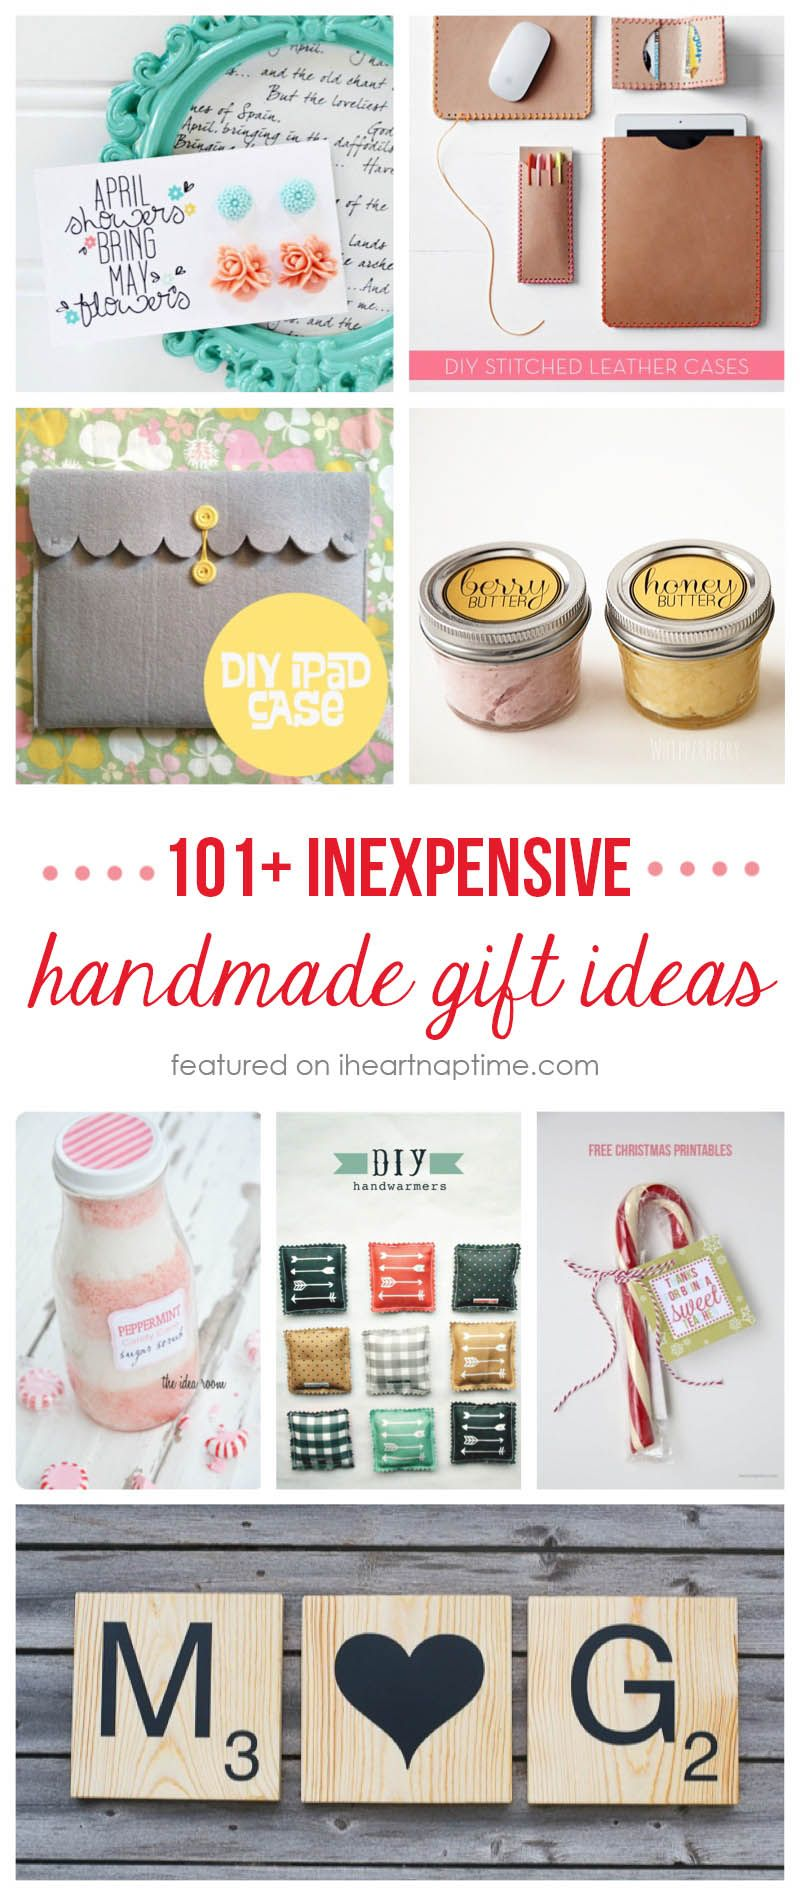 Homemade Craft Ideas For Christmas Gifts Part - 31: Inexpensive Handmade Christmas Gifts - I Heart Nap Time - Easy Recipes, DIY  Crafts, Homemaking